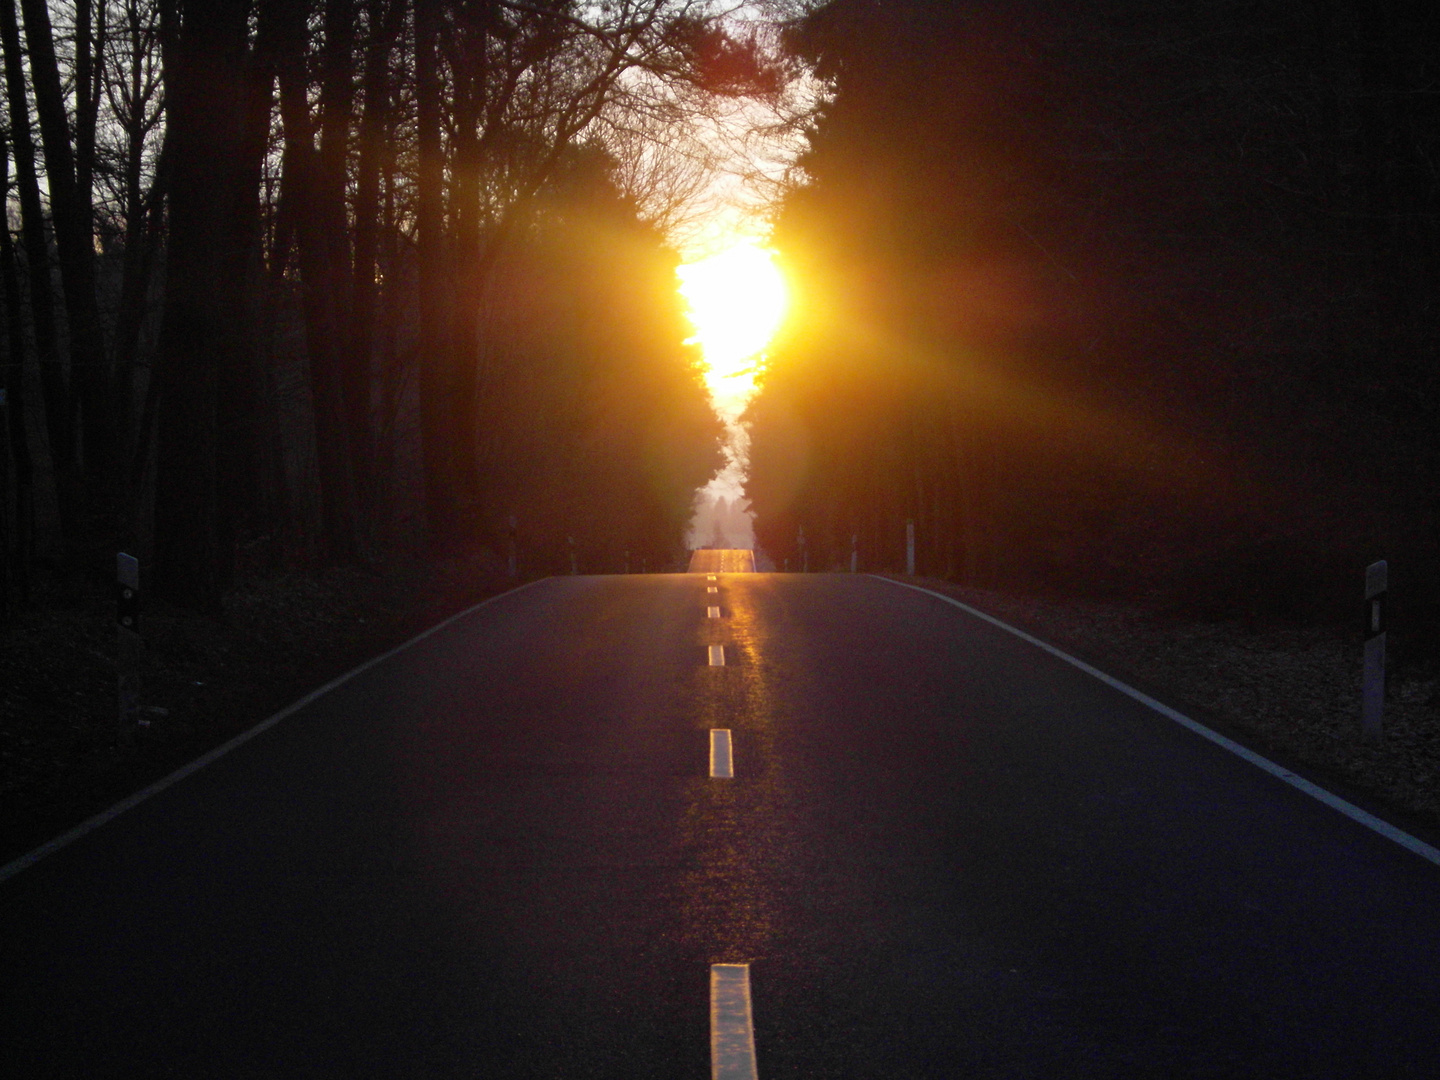 road to nowhere; up and down